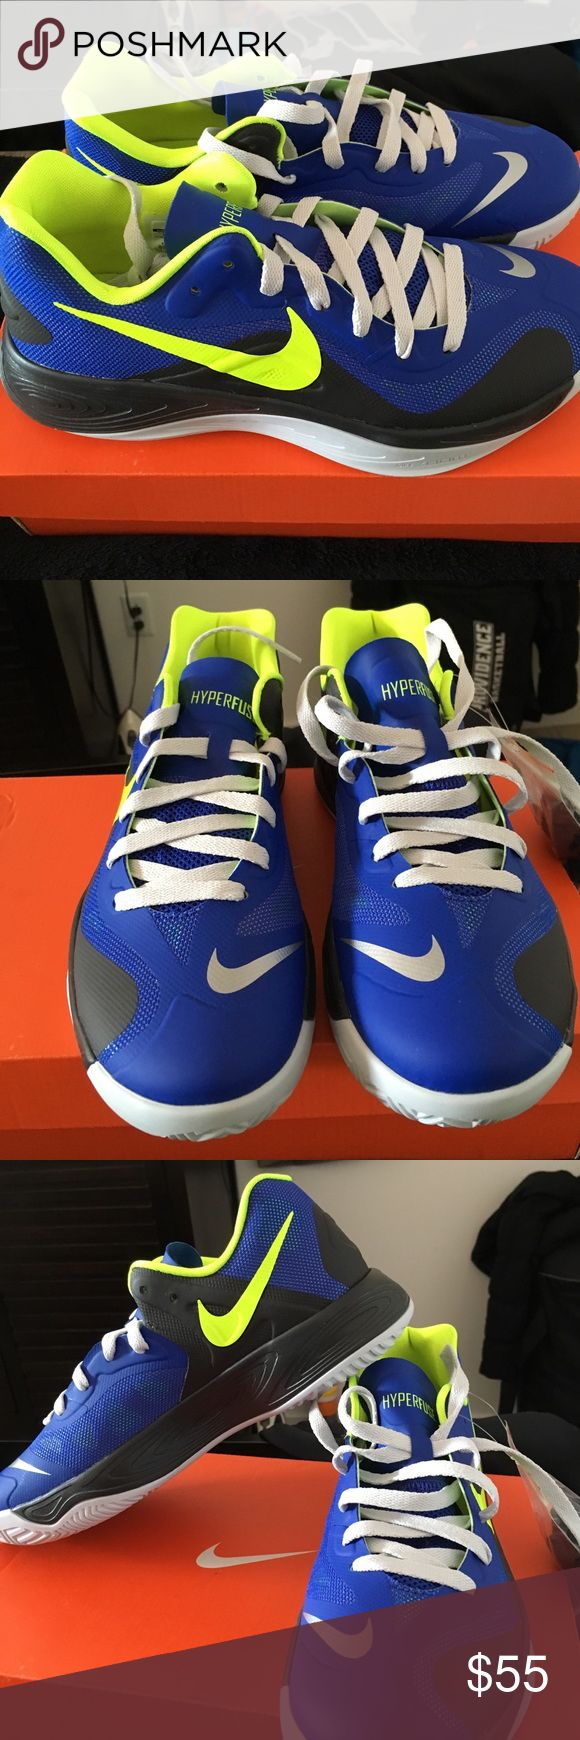 Brand new basketball sneakers Nike Hyperfuse Low Top basketball shoe. Royal blue & neon green. Brand new never worn. With extra pair of royal blue shoe laces Nike Shoes Athletic Shoes